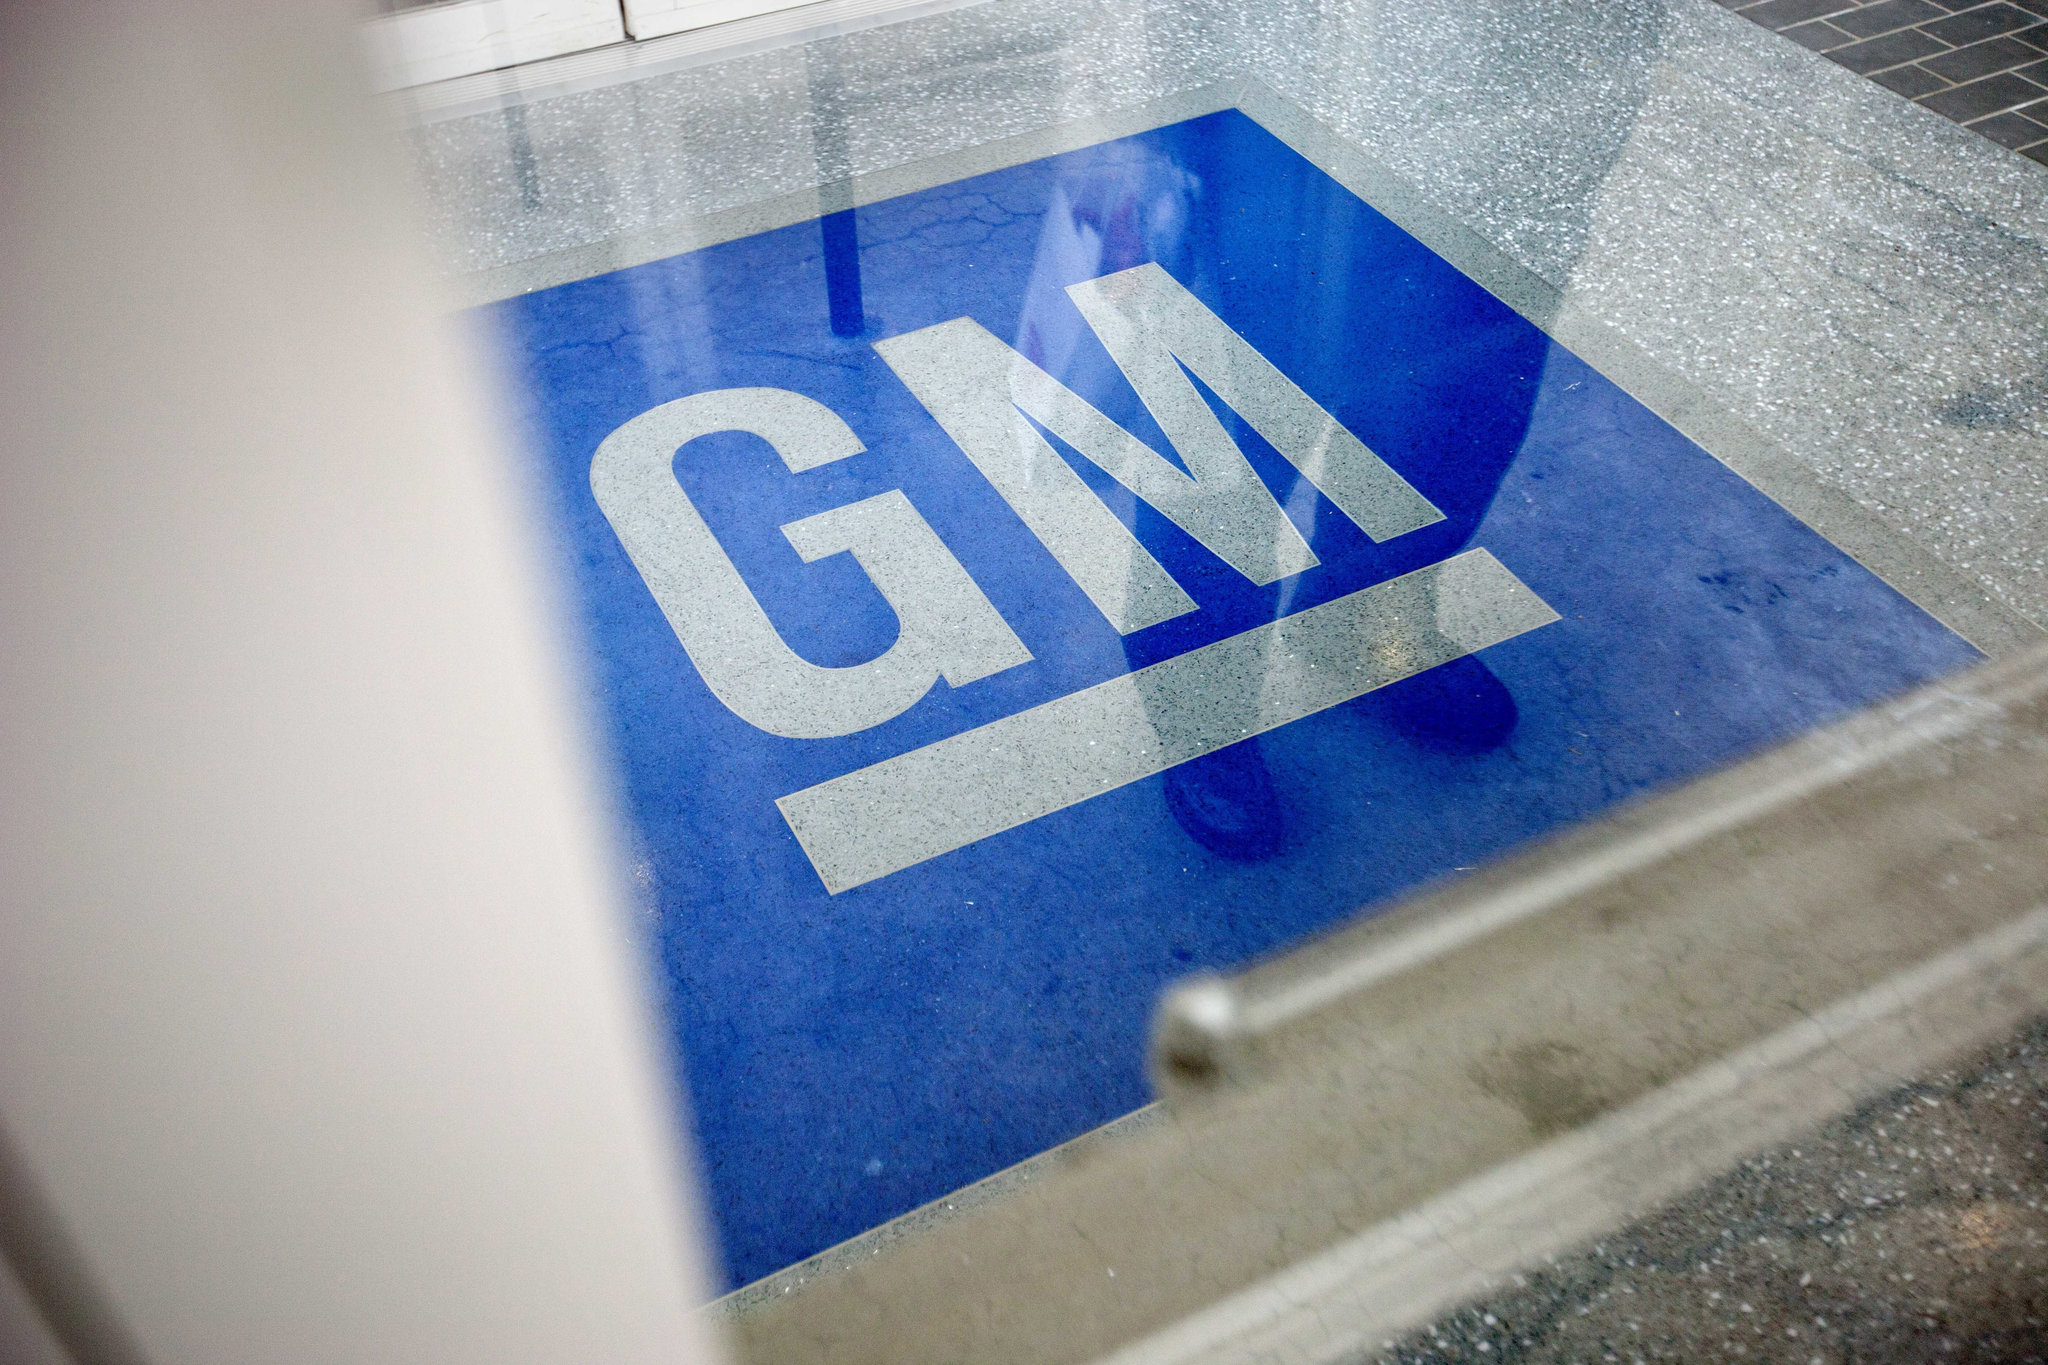 Feds investigating massive GM recall to see if more SUVs need to be added